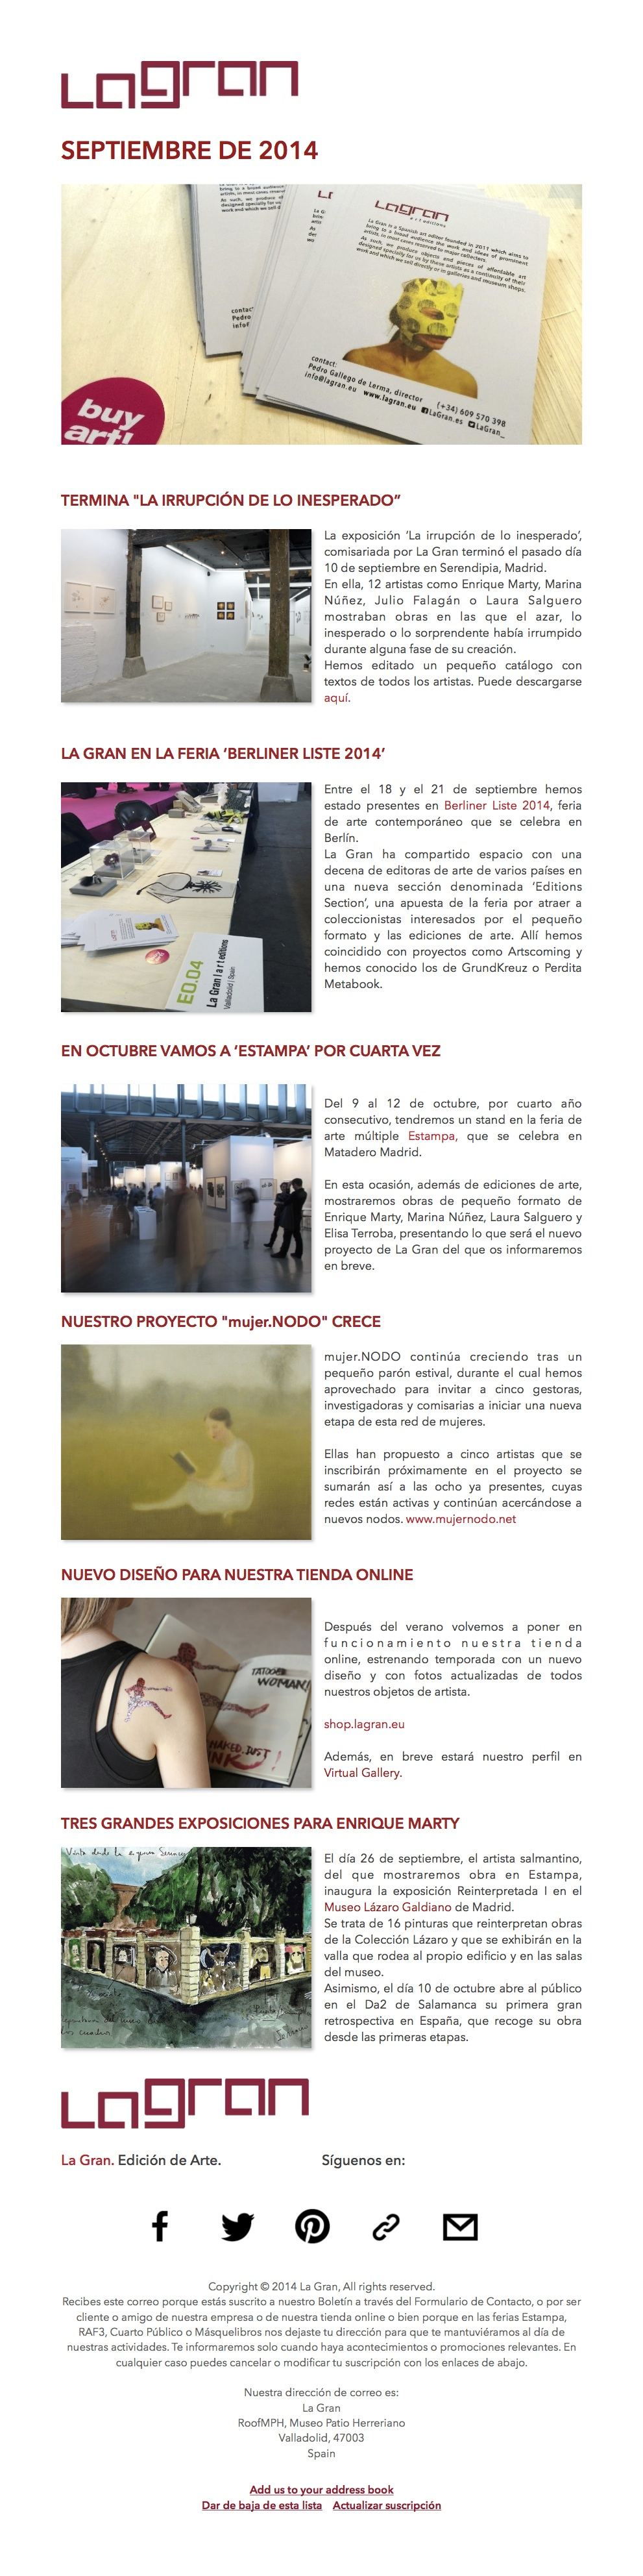 mailing septiembre 2014